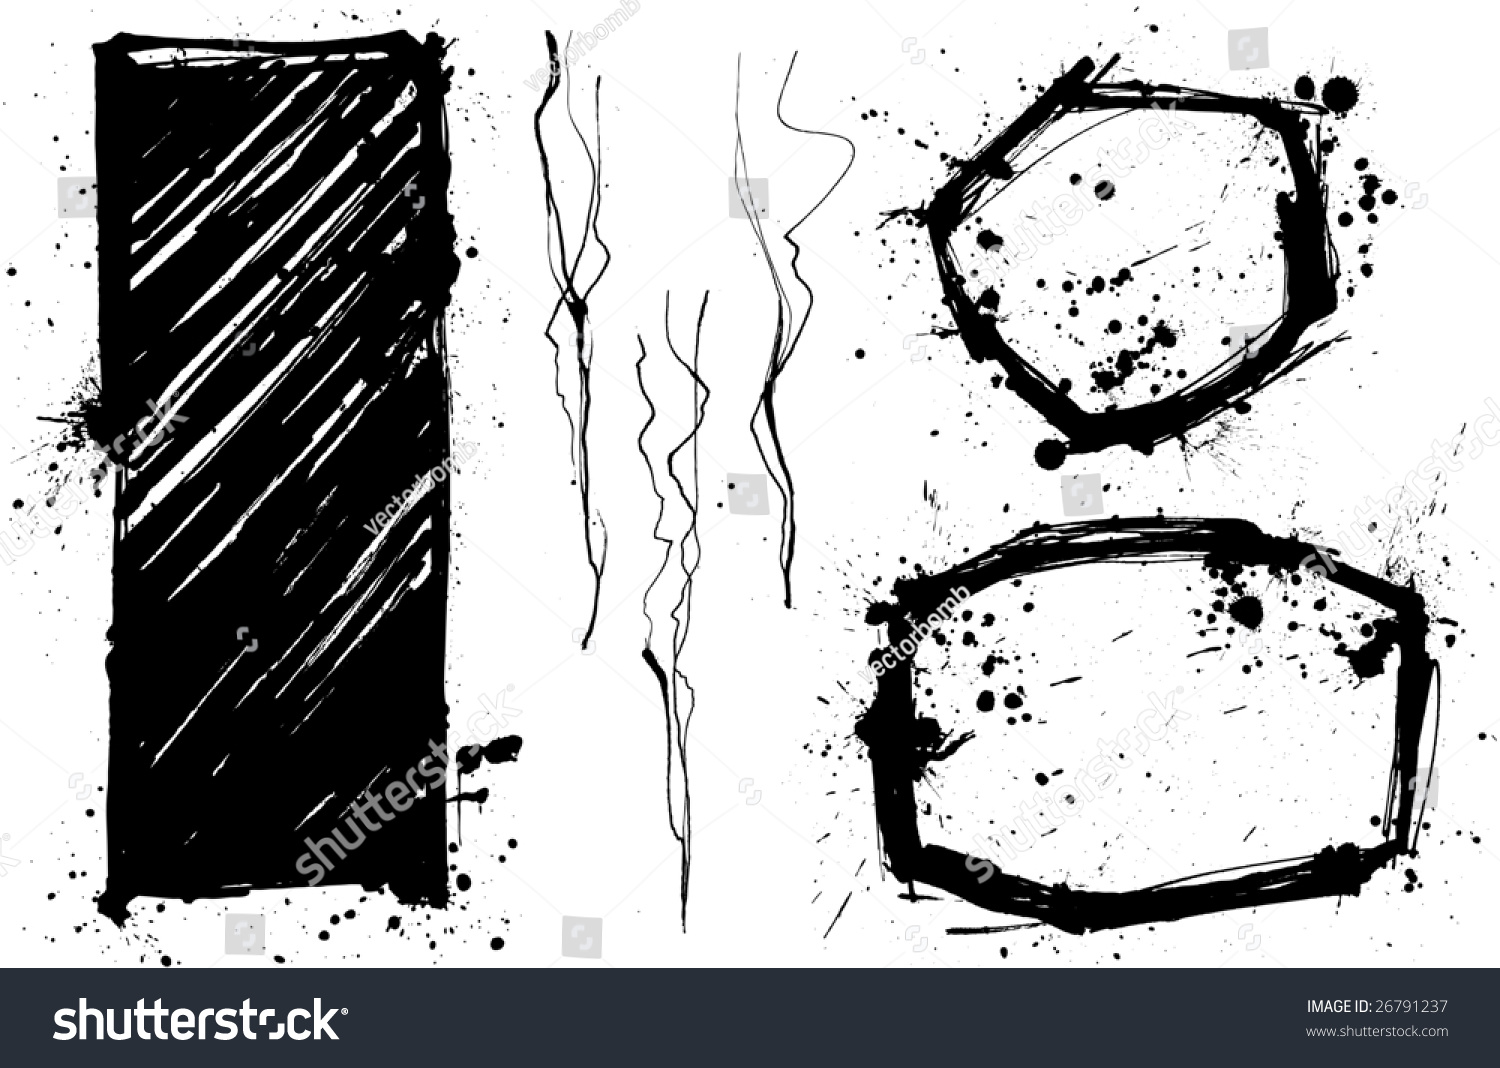 vector illustration of various comic framing elements oval frames smoke trails or vines and